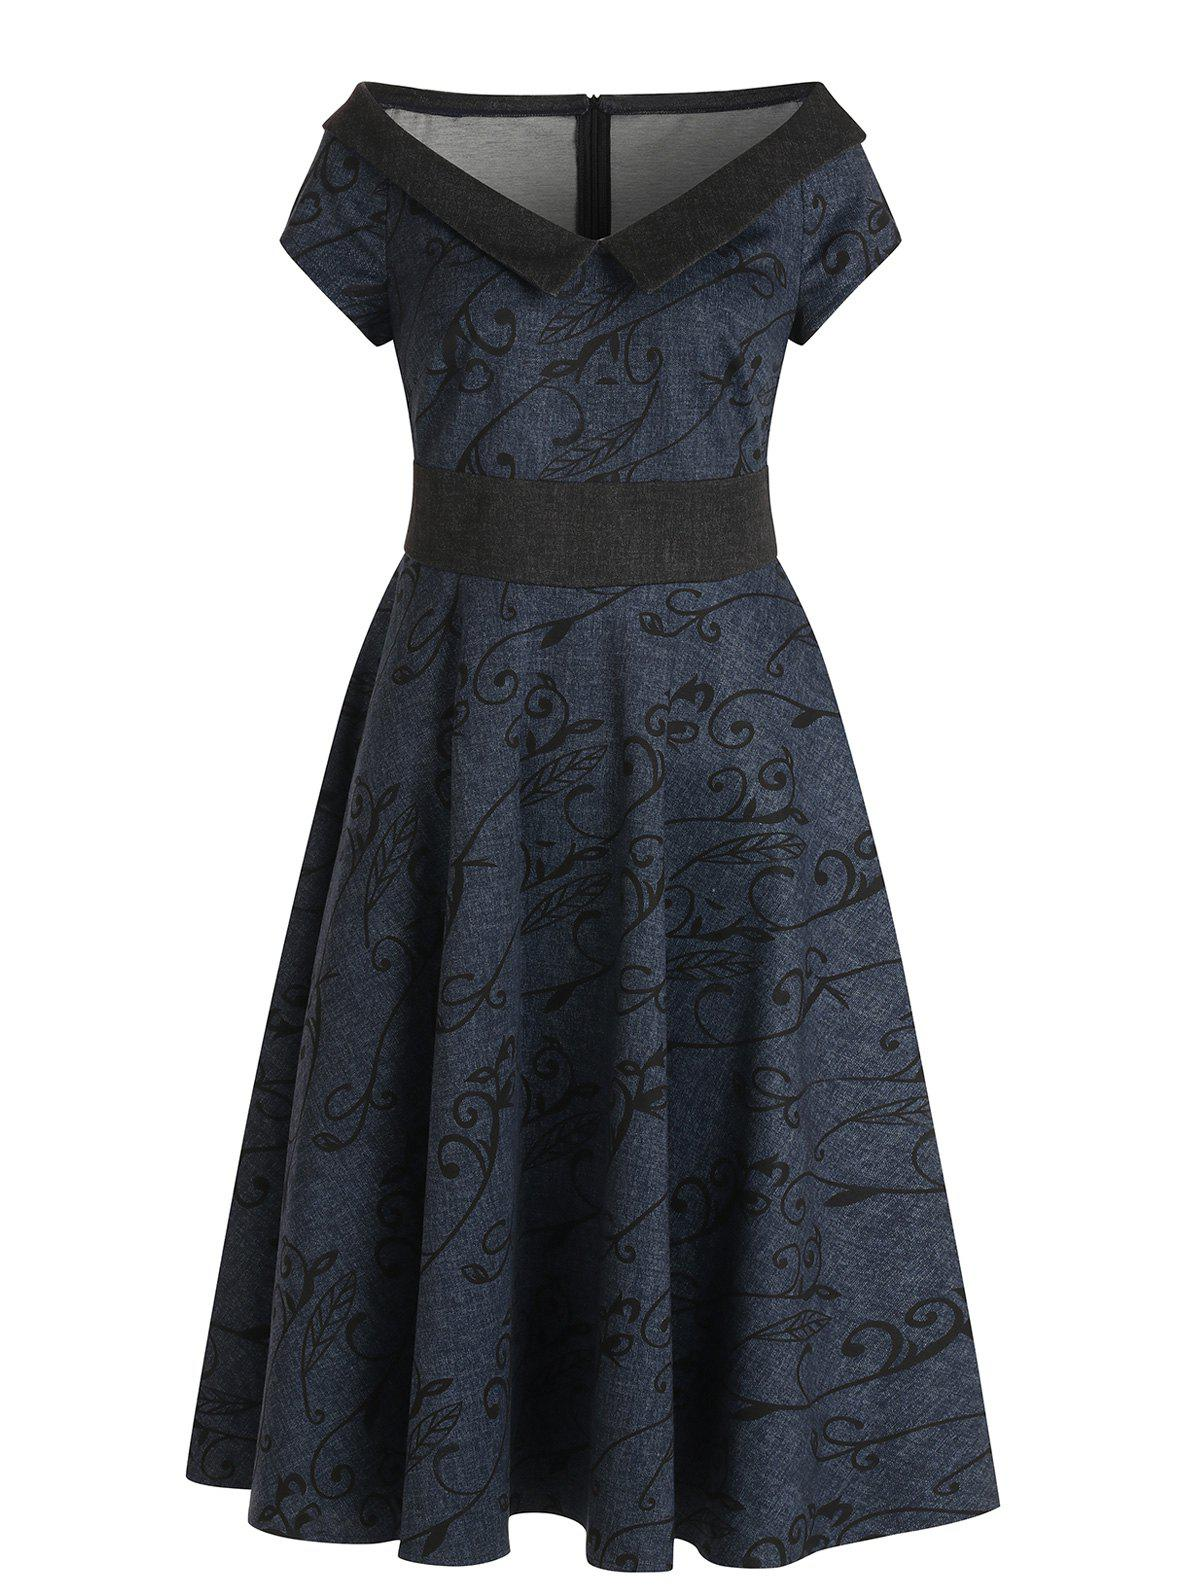 Flat Collar Plant Print Vintage Swing Dress - DARK SLATE BLUE L